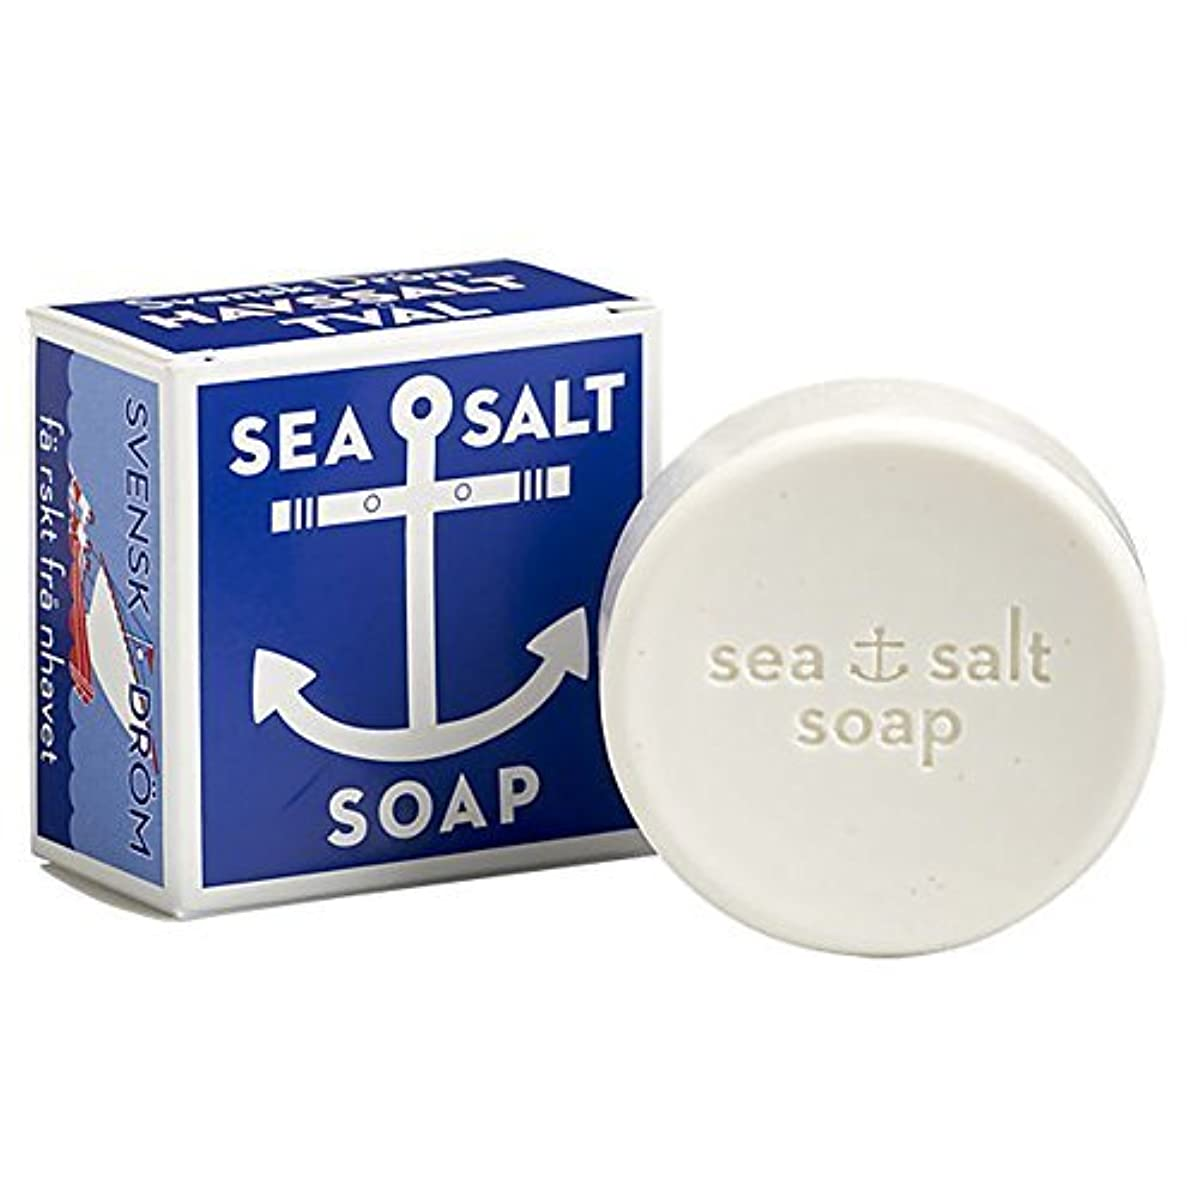 スリッパピラミッドピジンSwedish Dream Sea Salt Invigorating Bath Soap - One 4.3 oz Bar by Swedish Dream [並行輸入品]